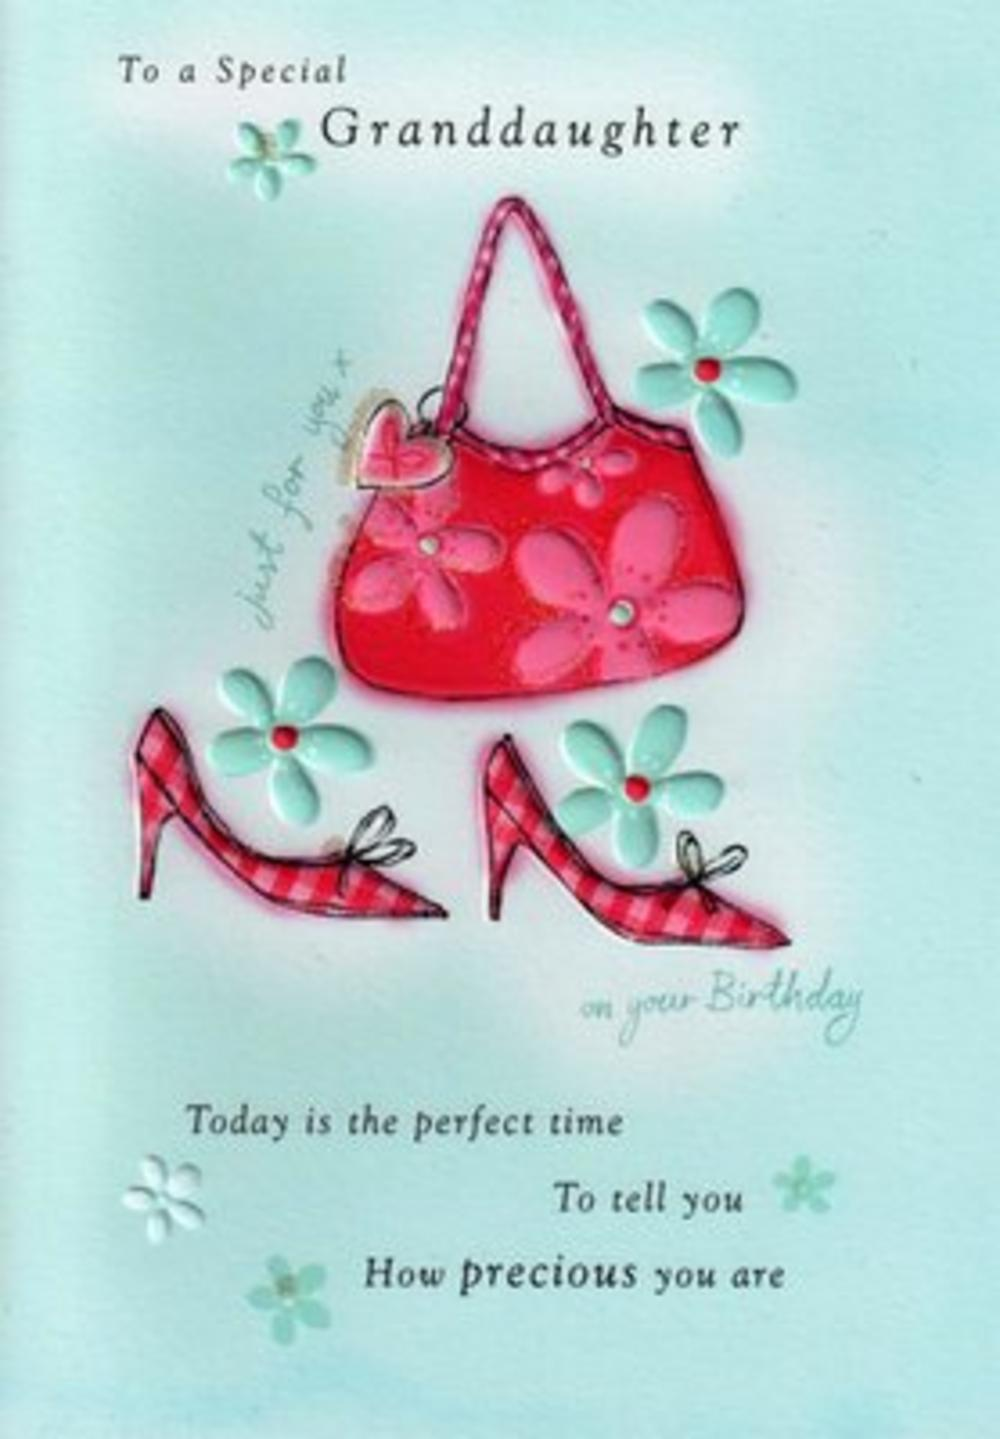 granddaughter birthday card images ; lrgscale5992_1